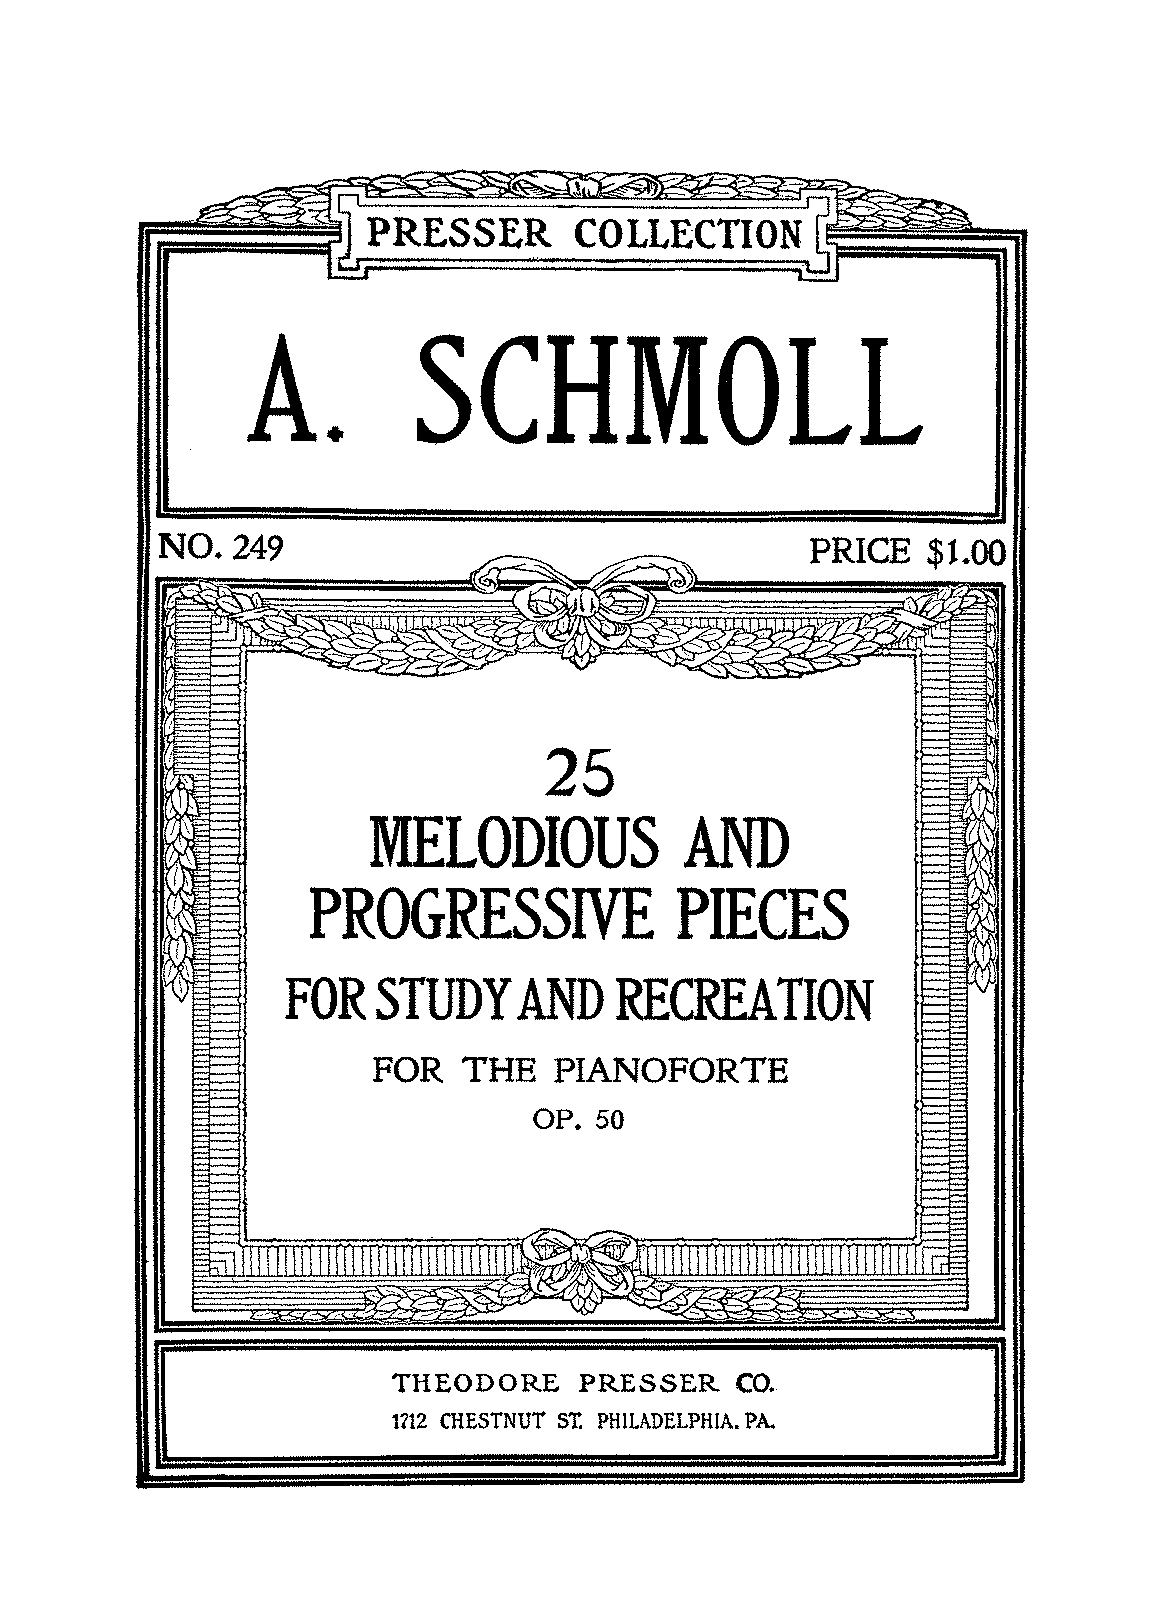 PMLP486168-Schmoll,A.-25 Melodious and Progressive Pieces for Study and Recreation-Op.50.pdf